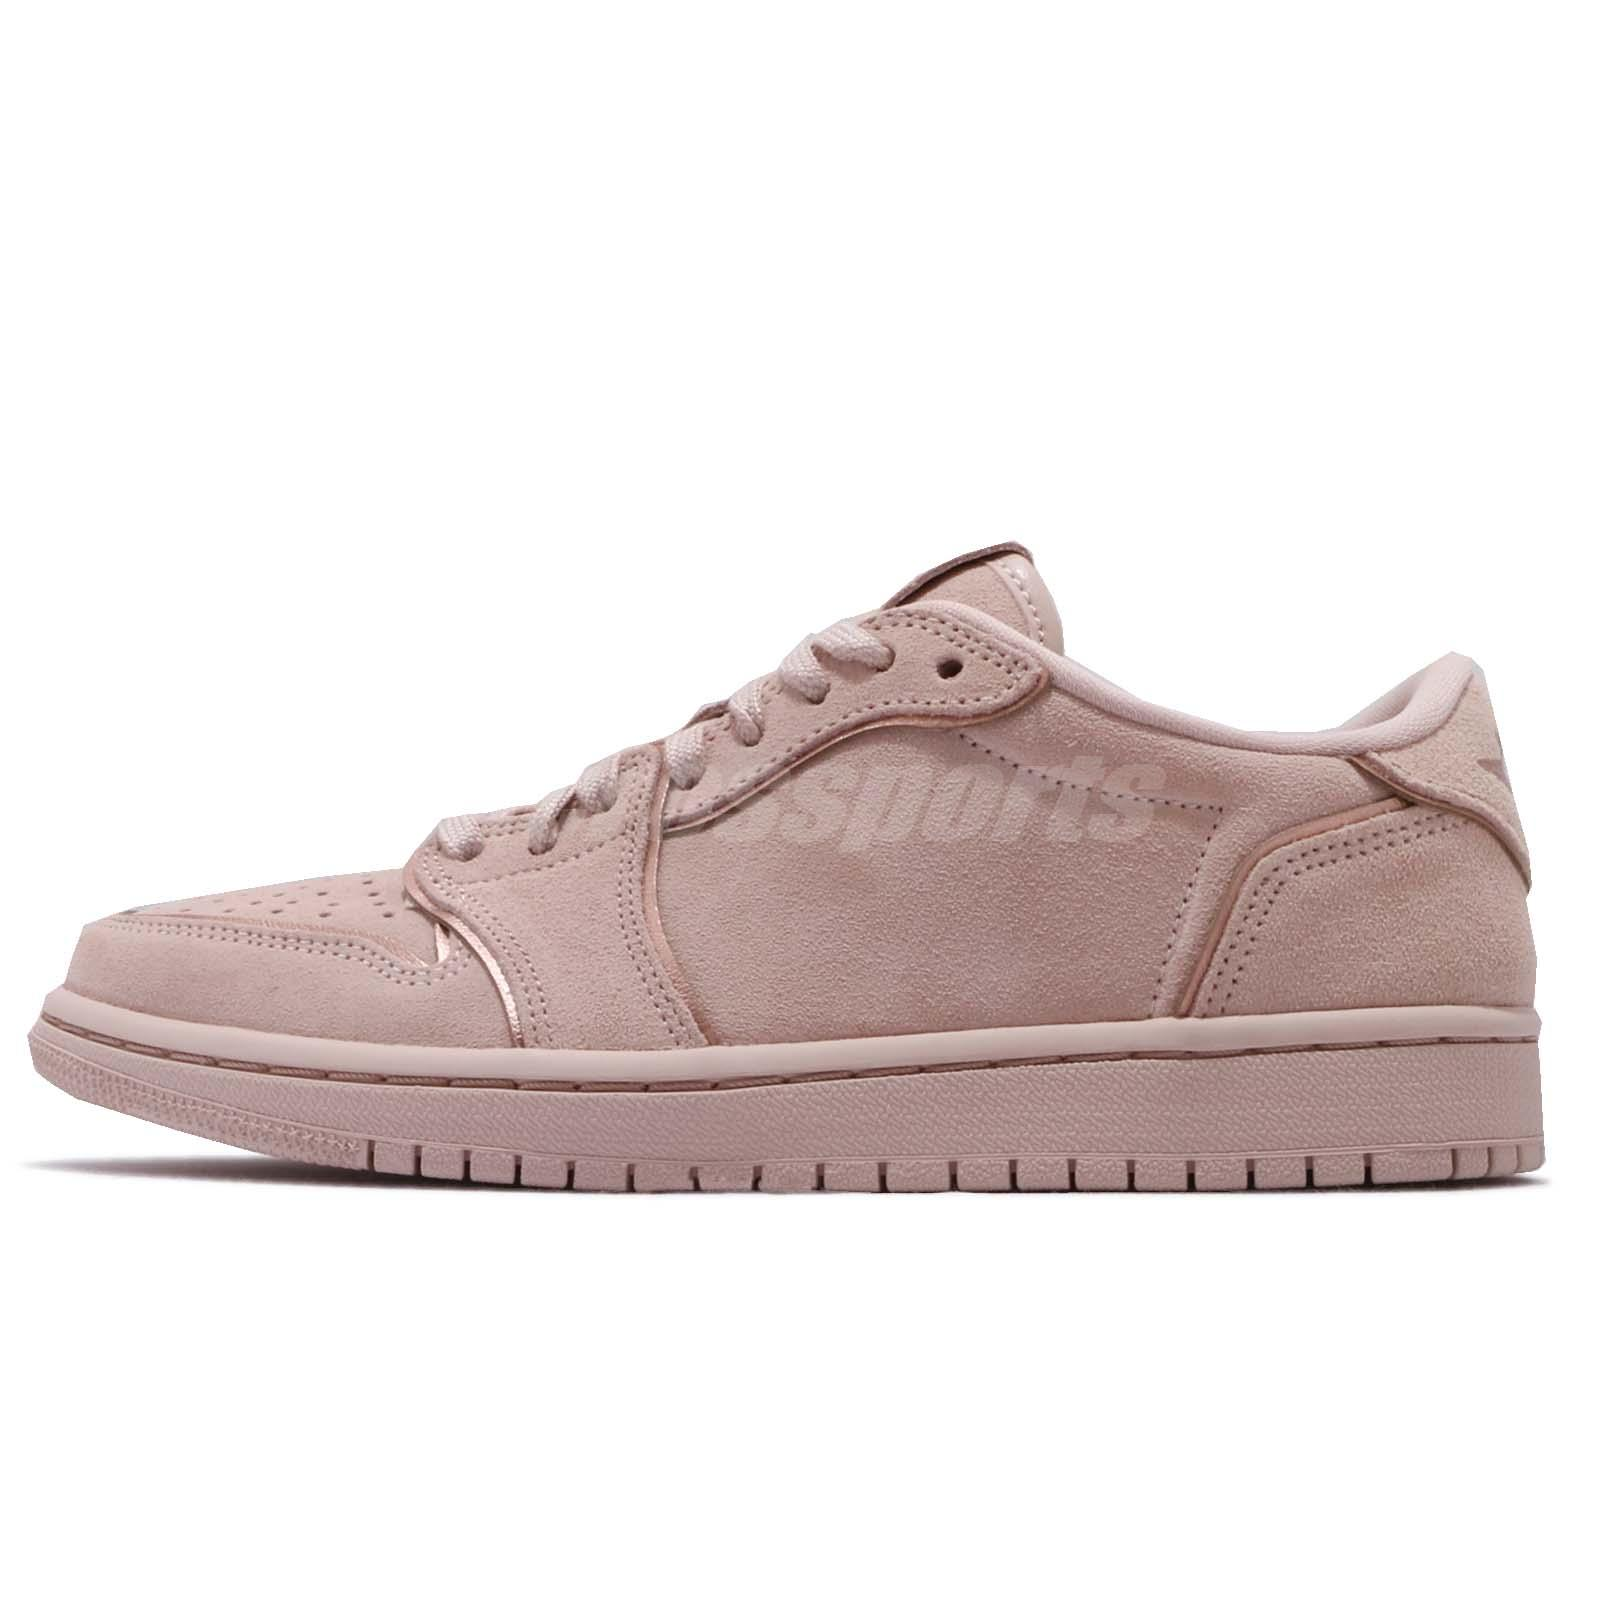 b4f398cd47c Nike Wmns Air Jordan 1 Retro Low NS No Swoosh Beige Women Shoes AJ1 AO1935 -204